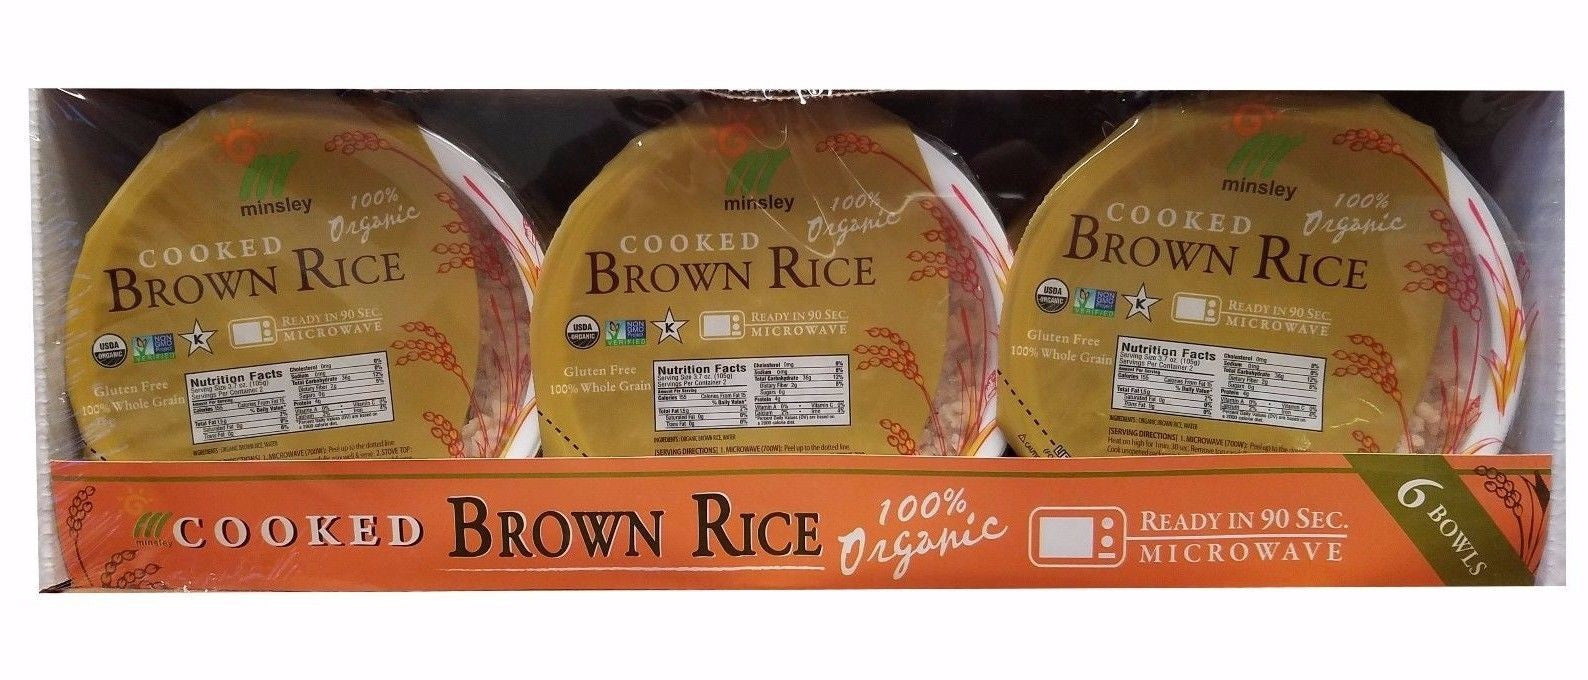 Minsley Cooked Brown Rice Bowl Organic Whole Grain Vegan 6 Bowls 3.7 OZ Each